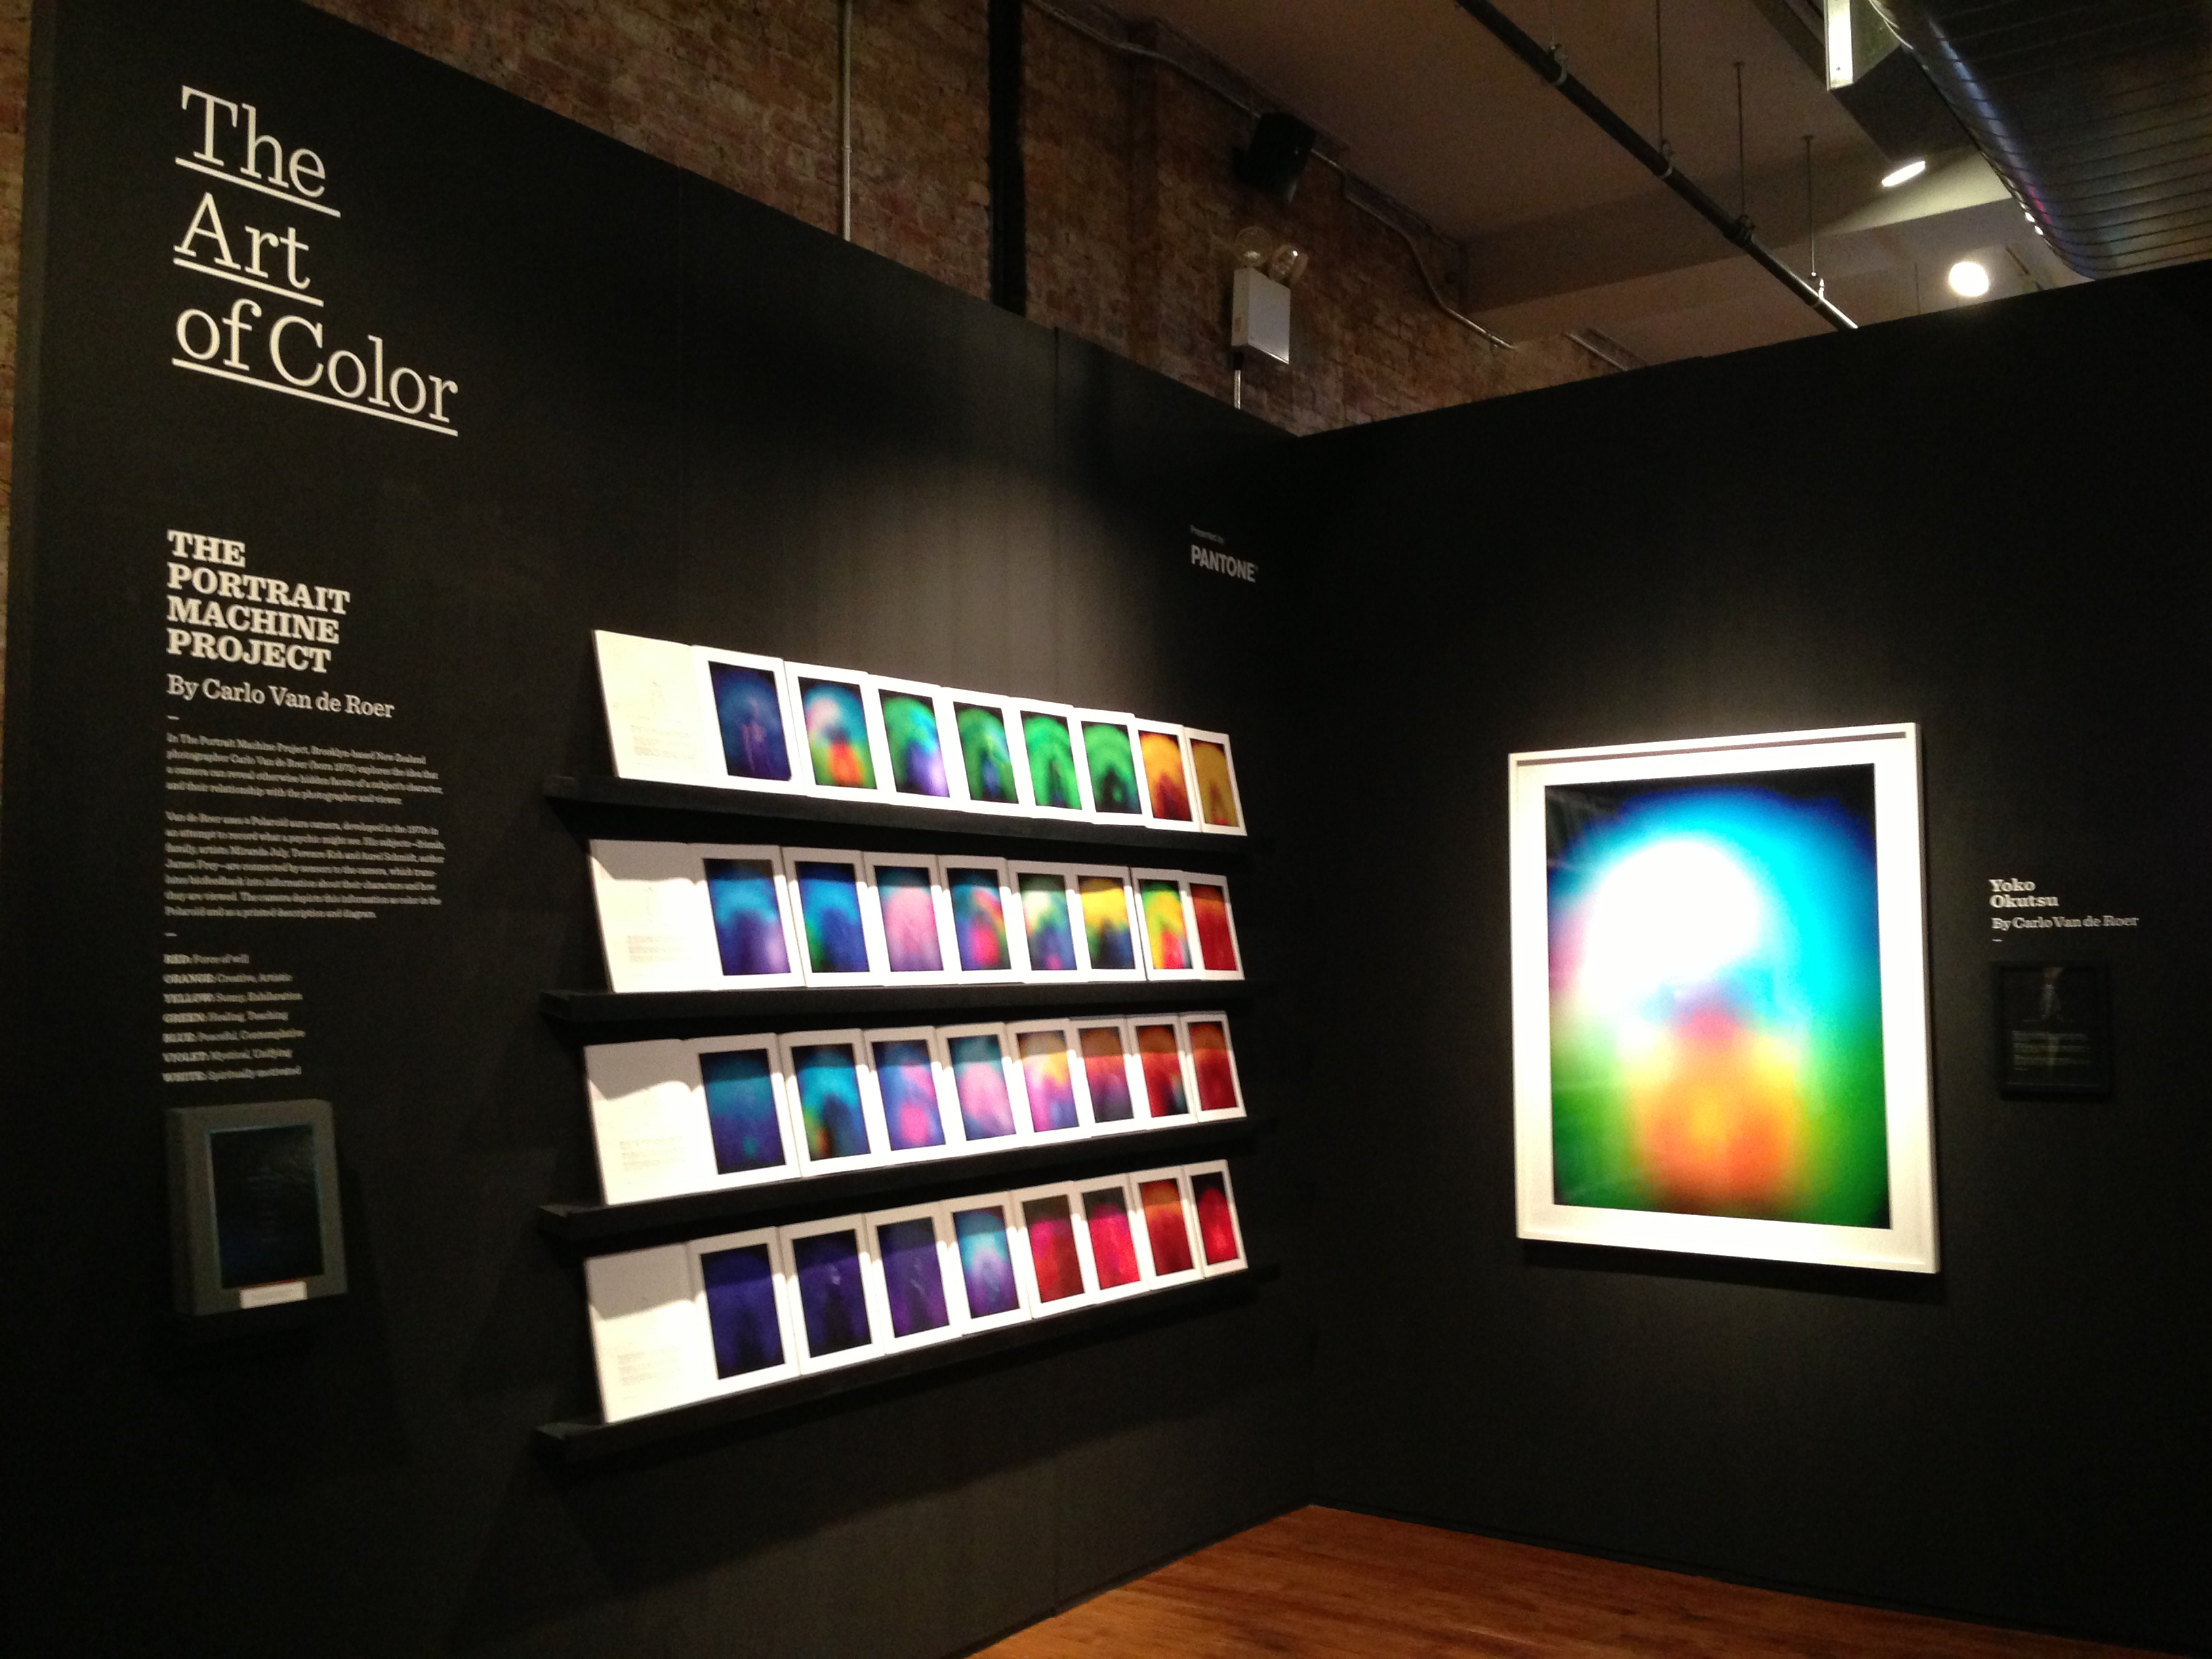 Adobe's Pantone Display booth at Behance's 99U pop up school.